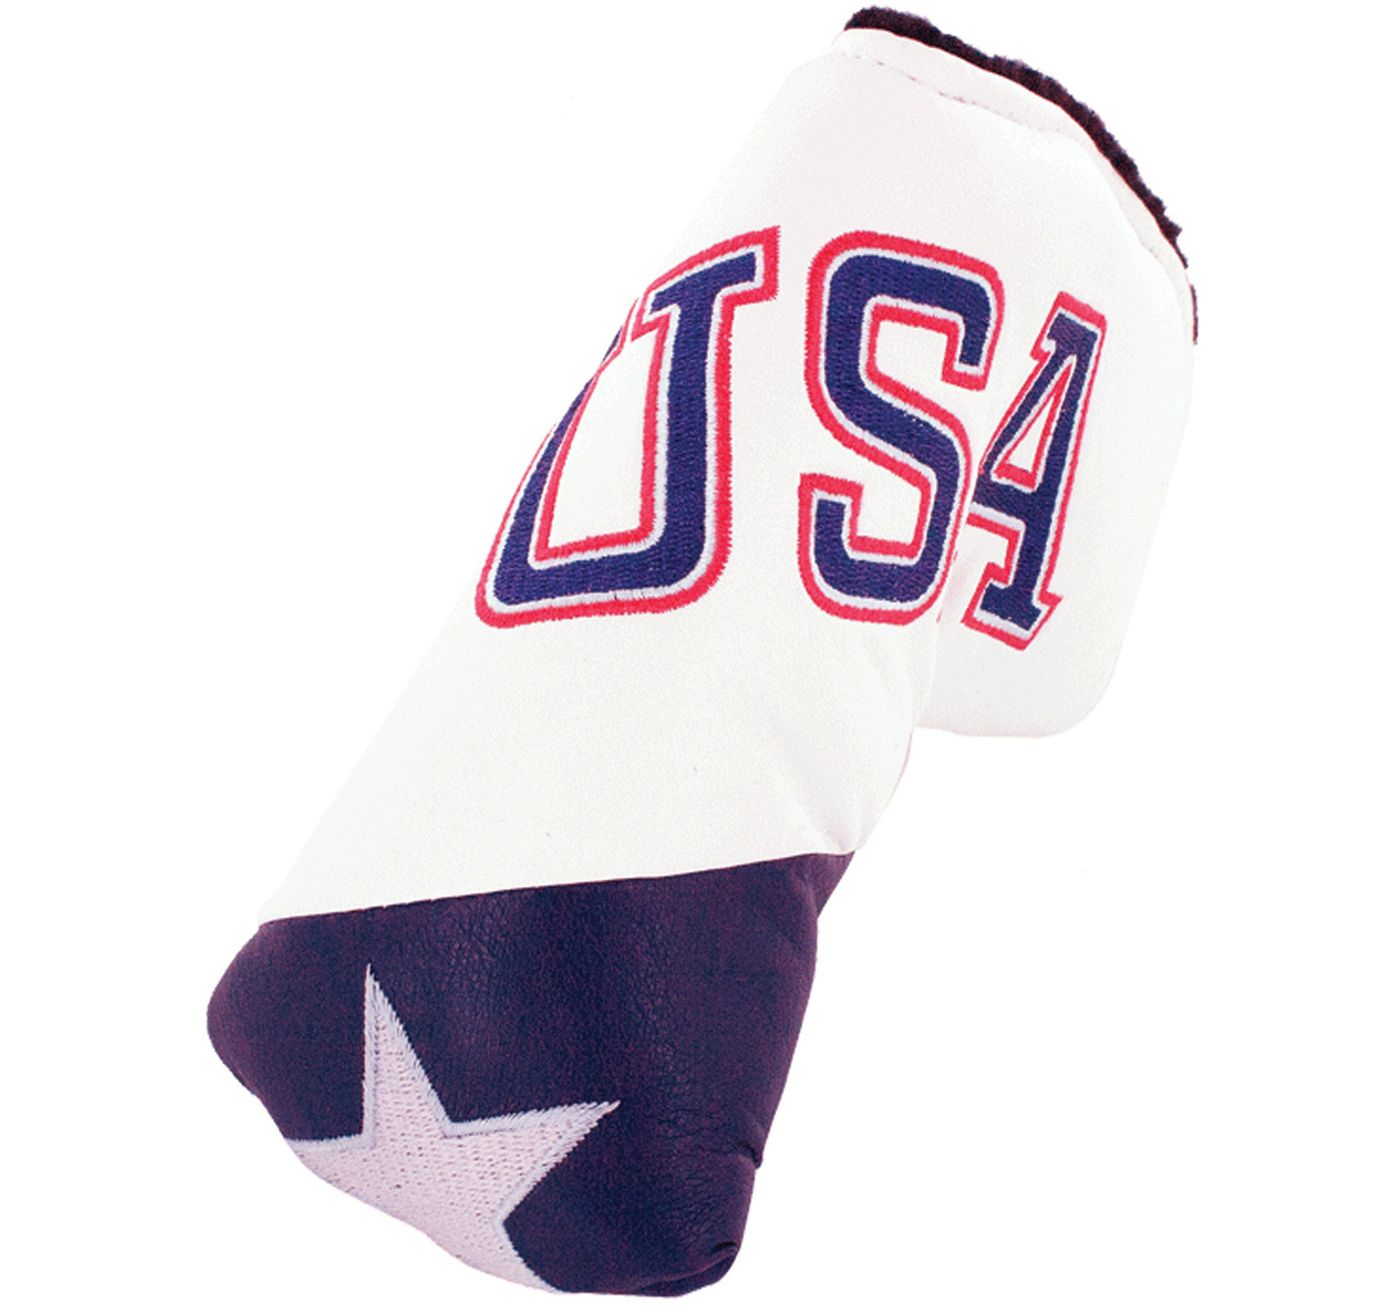 CMC Design USA Blade Putter Headcover